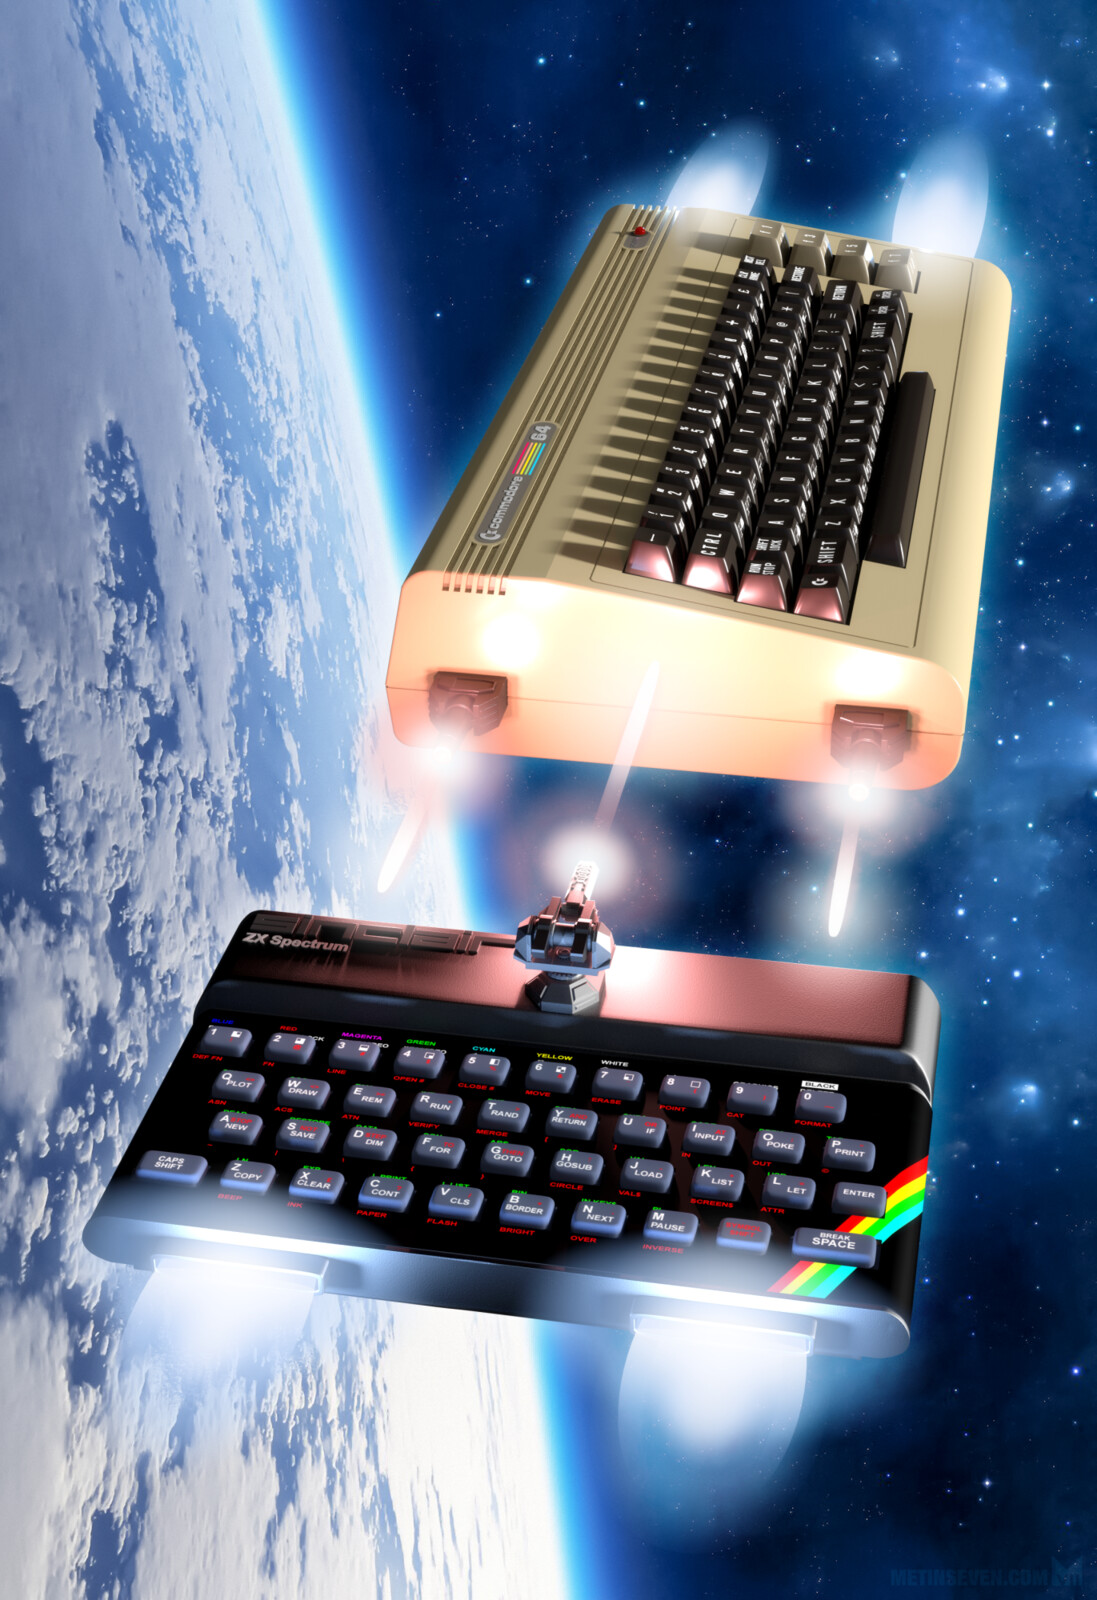 Commodore 64 vs Sinclair ZX Spectrum. Poster design for a retrocomputing documentary.